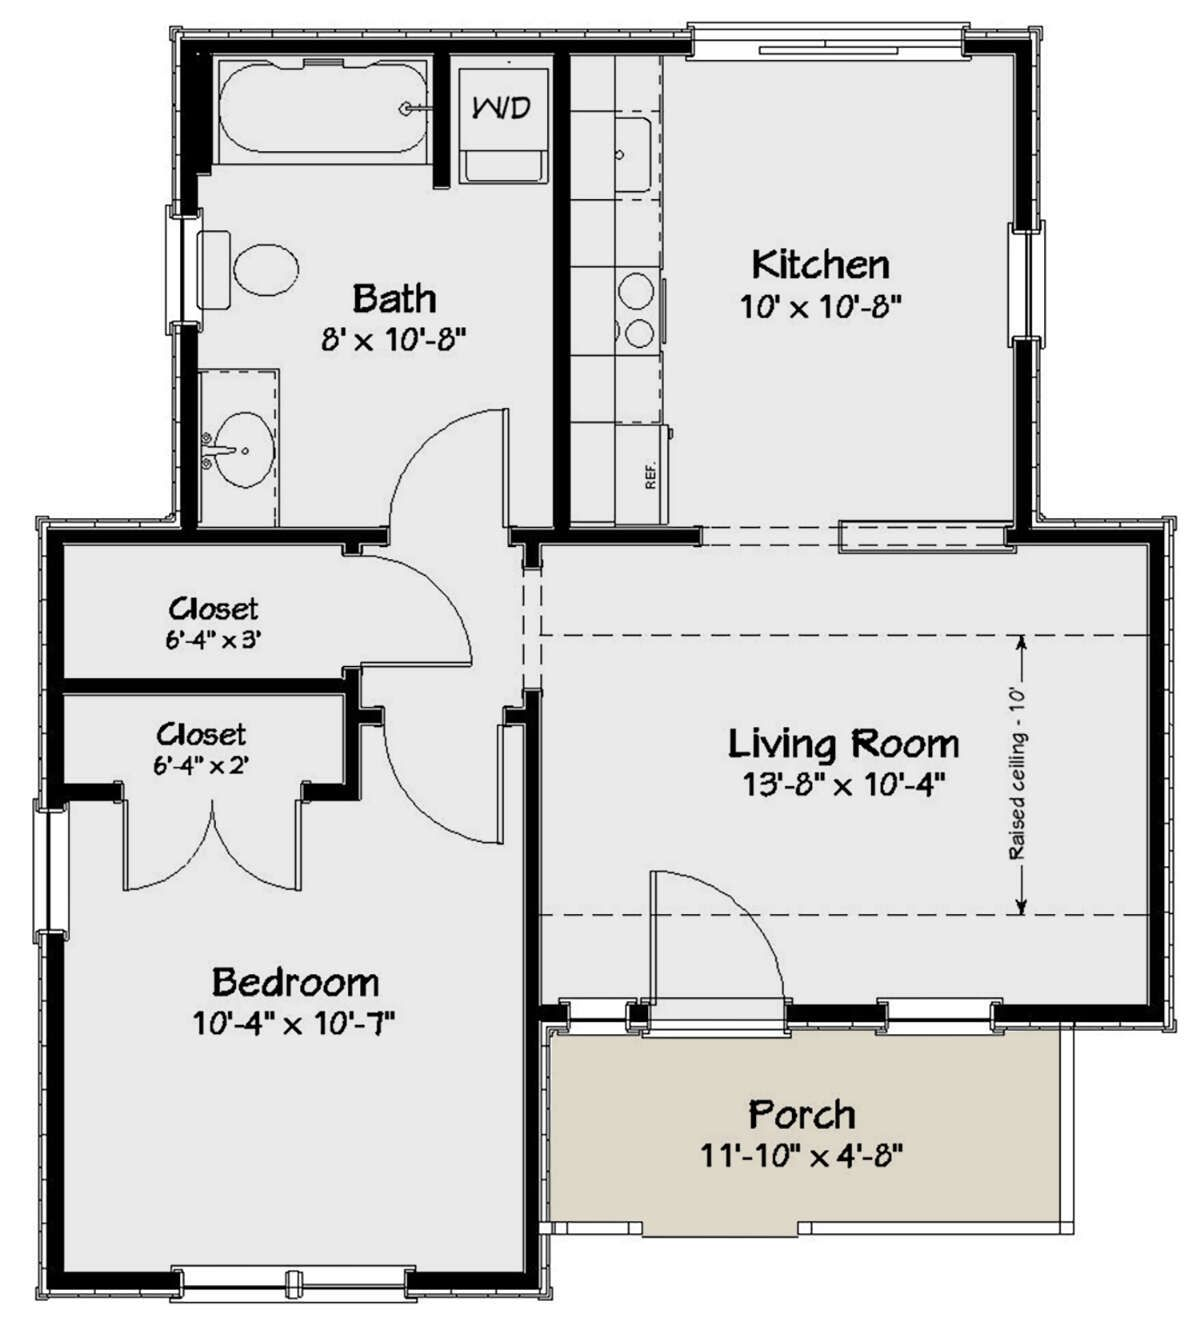 House Plan 1502 00002 Cottage Plan 550 Square Feet 1 Bedroom 1 Bathroom In 2020 Tiny House Floor Plans Cottage Floor Plans House Plans